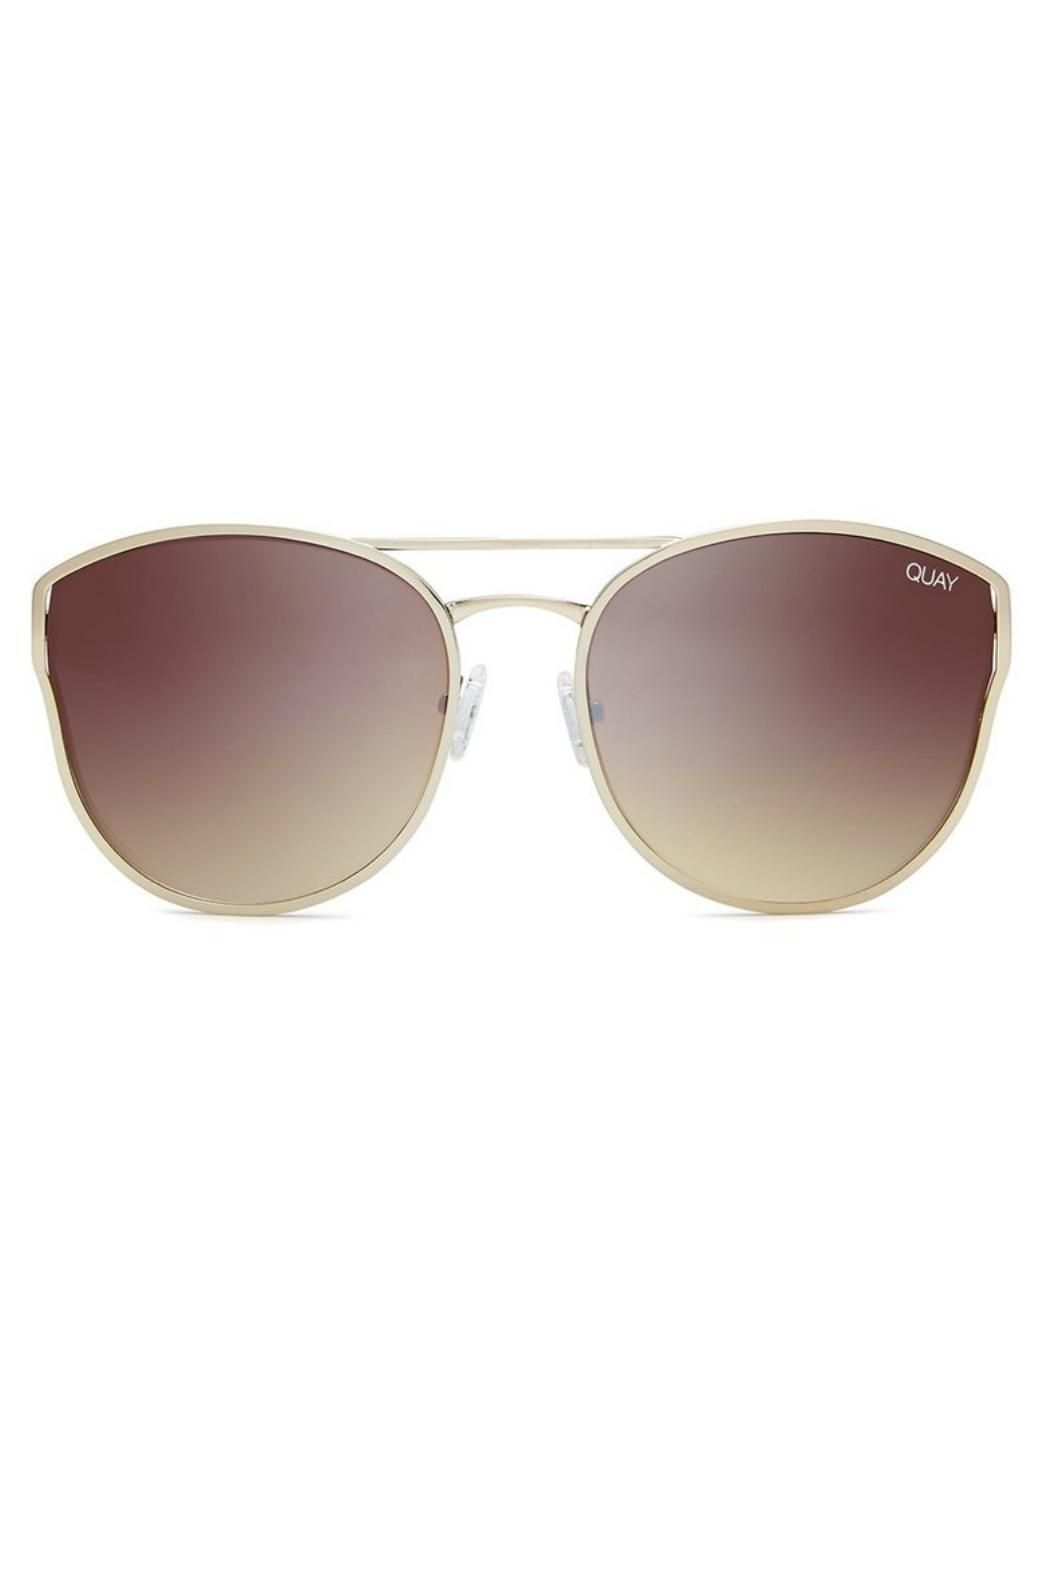 Cherry Bomb is for the ultimate cool girl providing the perfect amount of glam to any look. These rounded oversized cat eye sunnies feature a metal frame and double bridge adjustable nose pads.  Metal Frame. Polycarbonate Lens. Stainless Steel Hinges. 100% UV protection.   Width: 140mm. Height: 60mm. Nose Gap: 15mm. Cherry Bomb by Quay Australia. Accessories - Sunglasses Atlanta Georgia